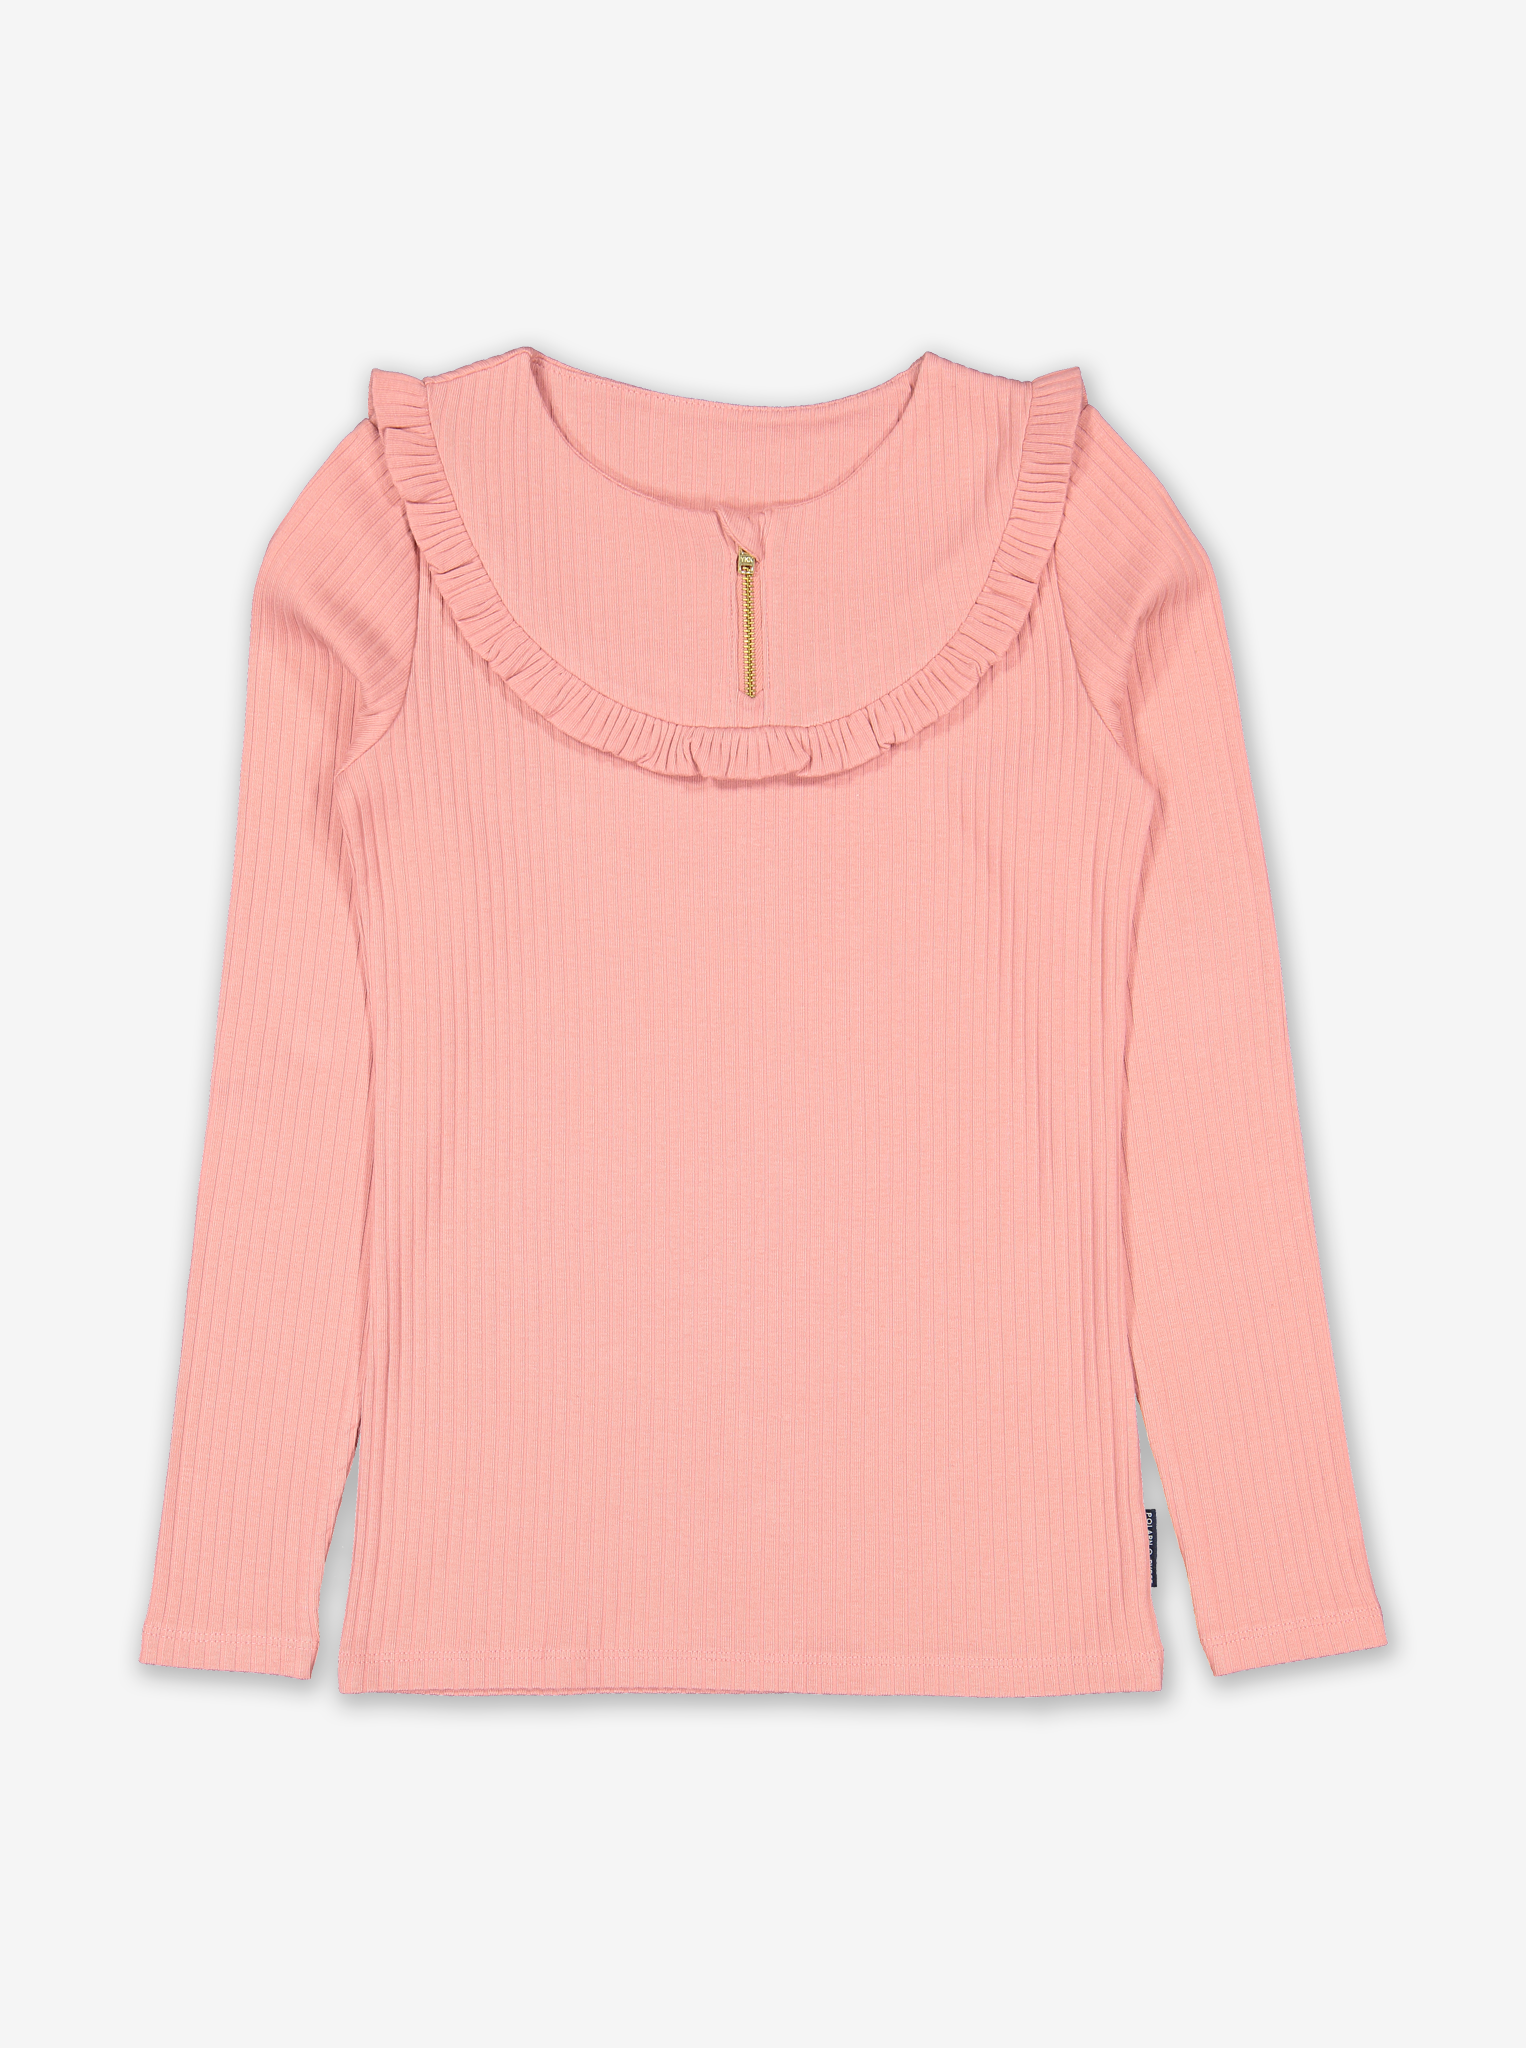 Ribbed Ruffle Kids Top